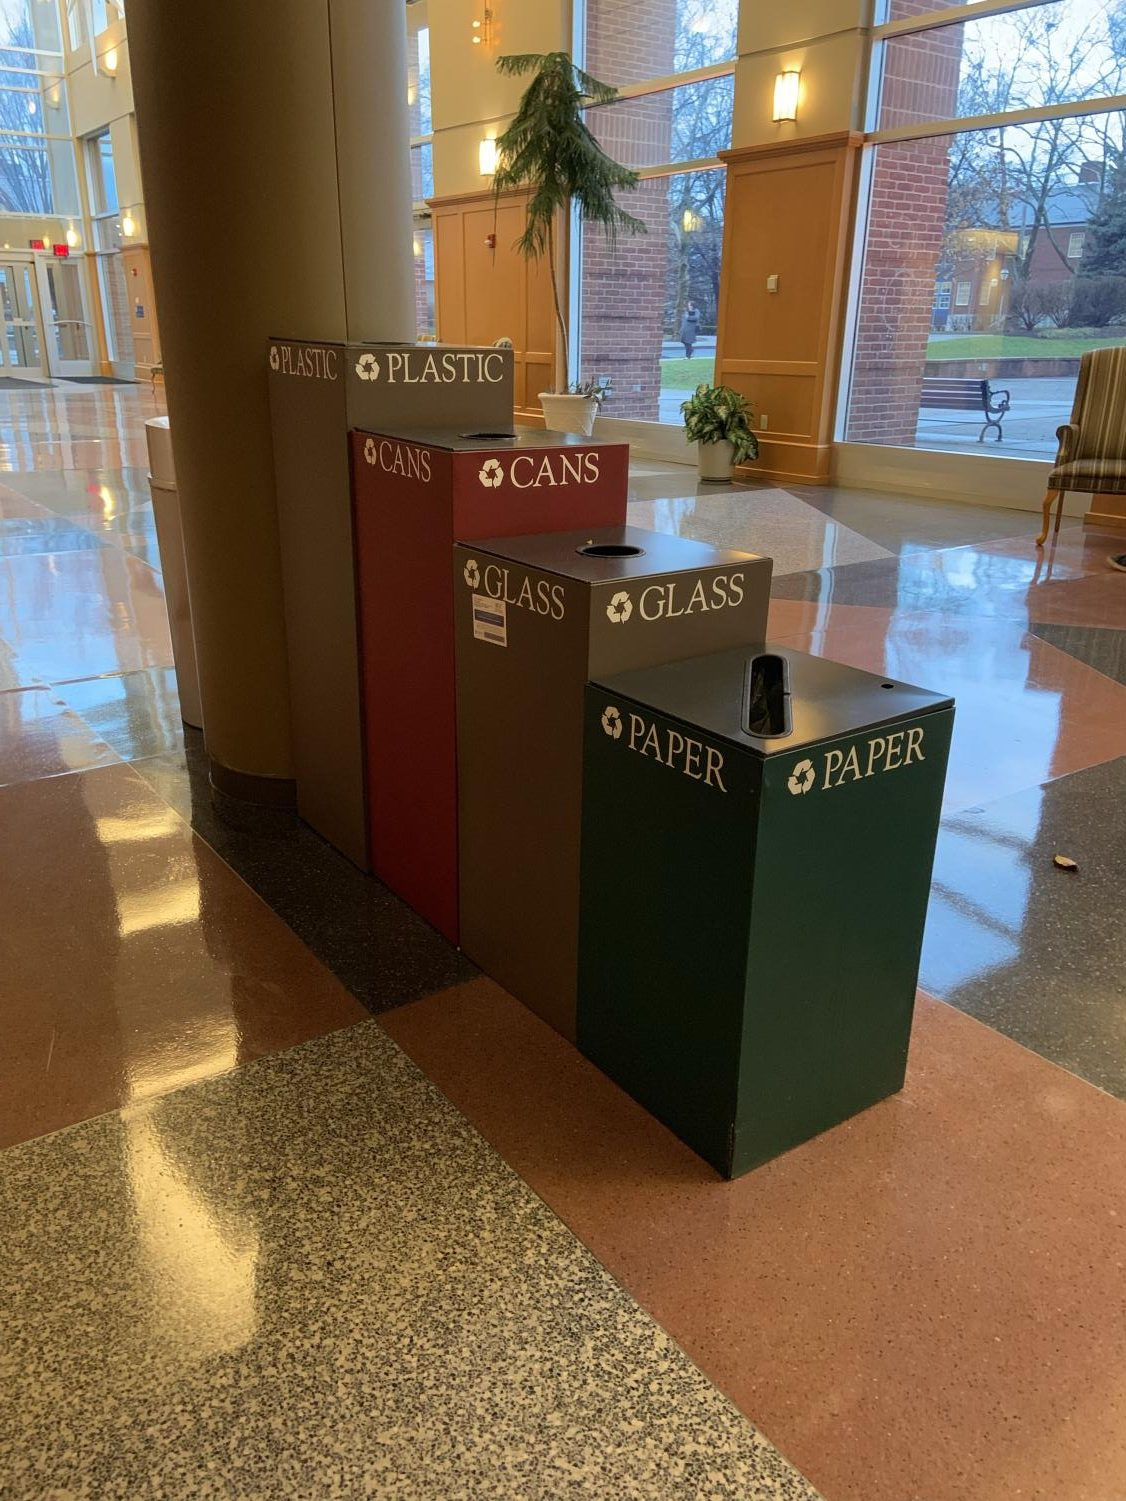 Garbage cans and recycling bins in PPHAC invite students and faculty to properly dispose of their waste and practice environmentally friendly procedures.